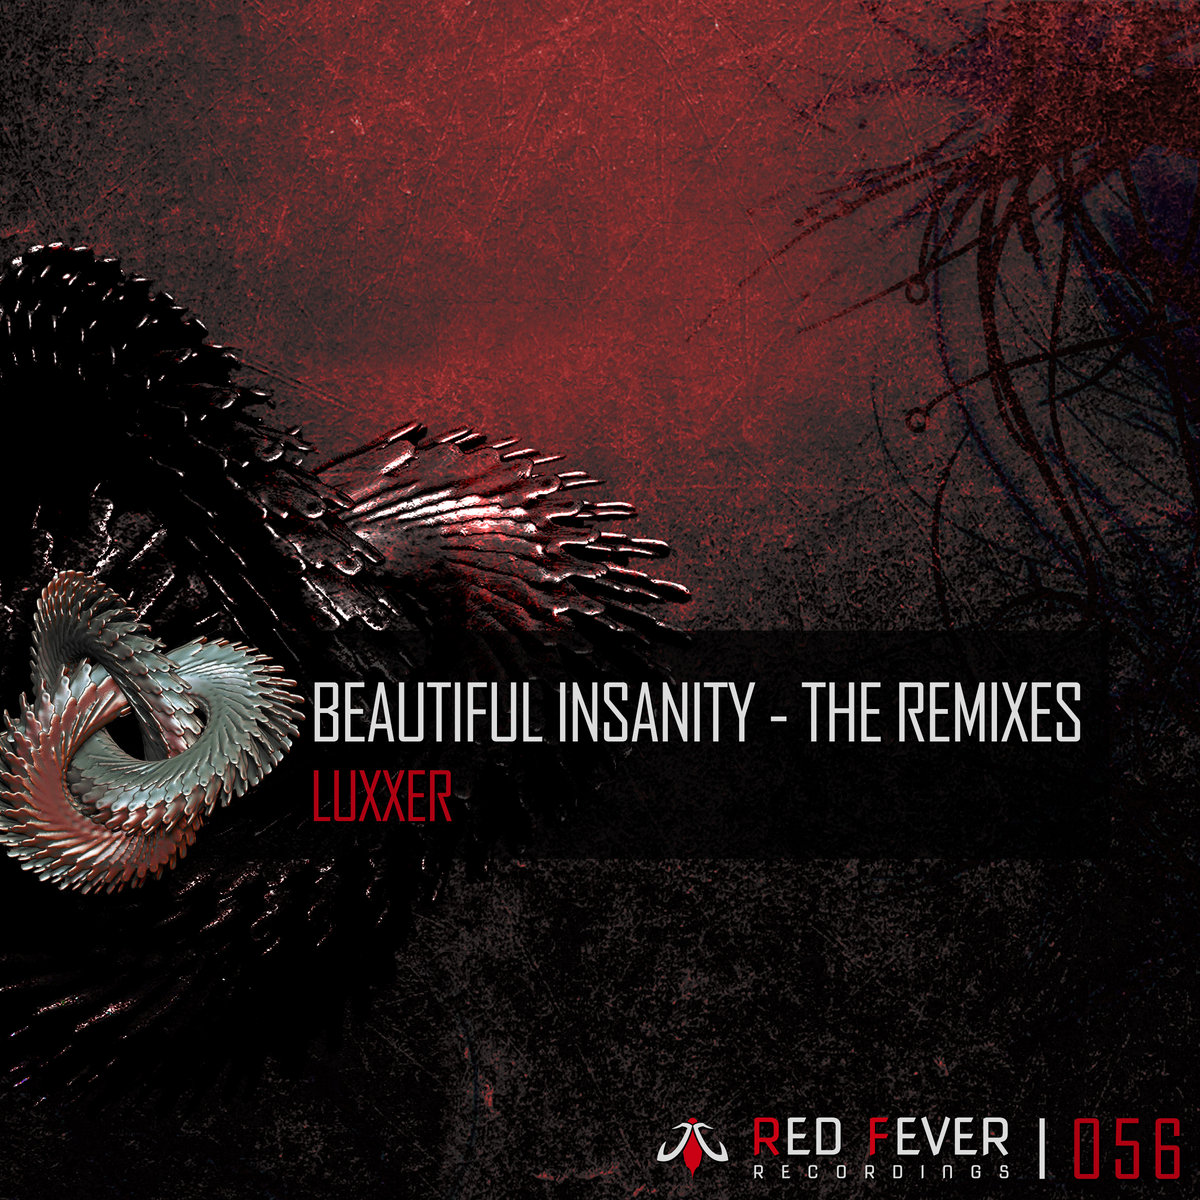 Luxxer - Beautiful Insanity (The remixes) @ 'Beautiful Insanity (The remixes)' album (carnage, cluster)